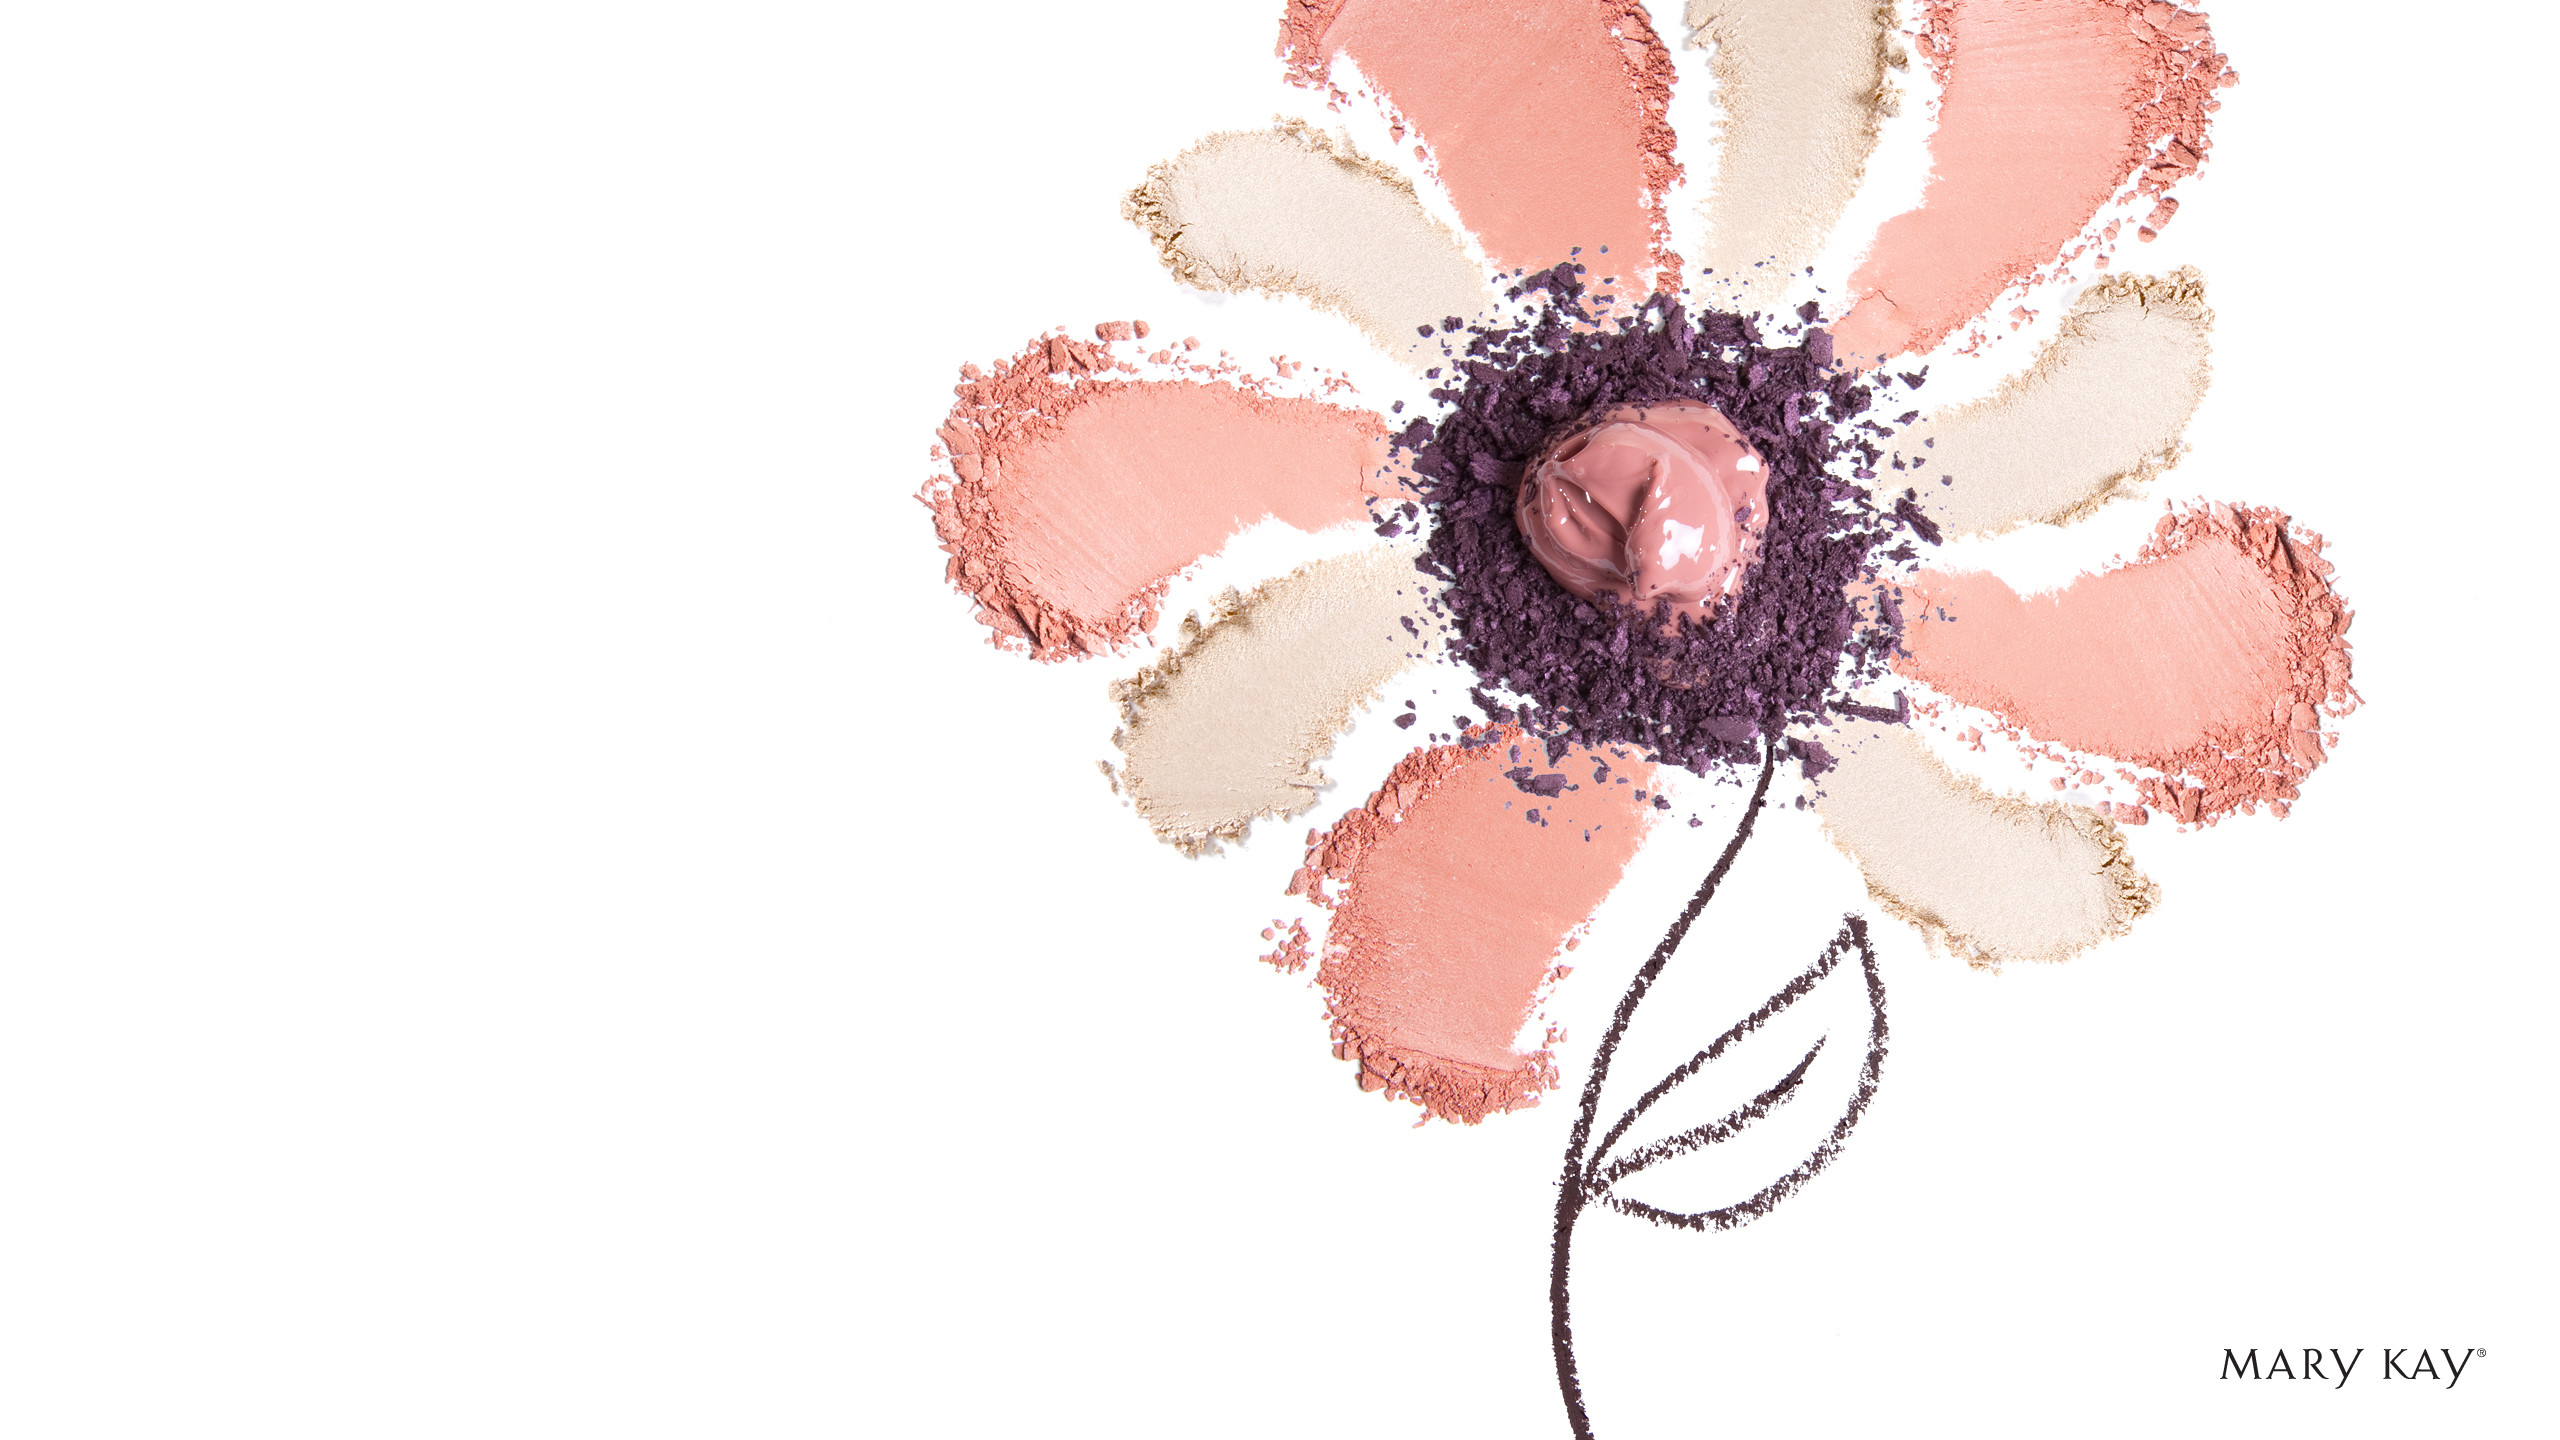 Free download mary kay desktop background download wallpapers.